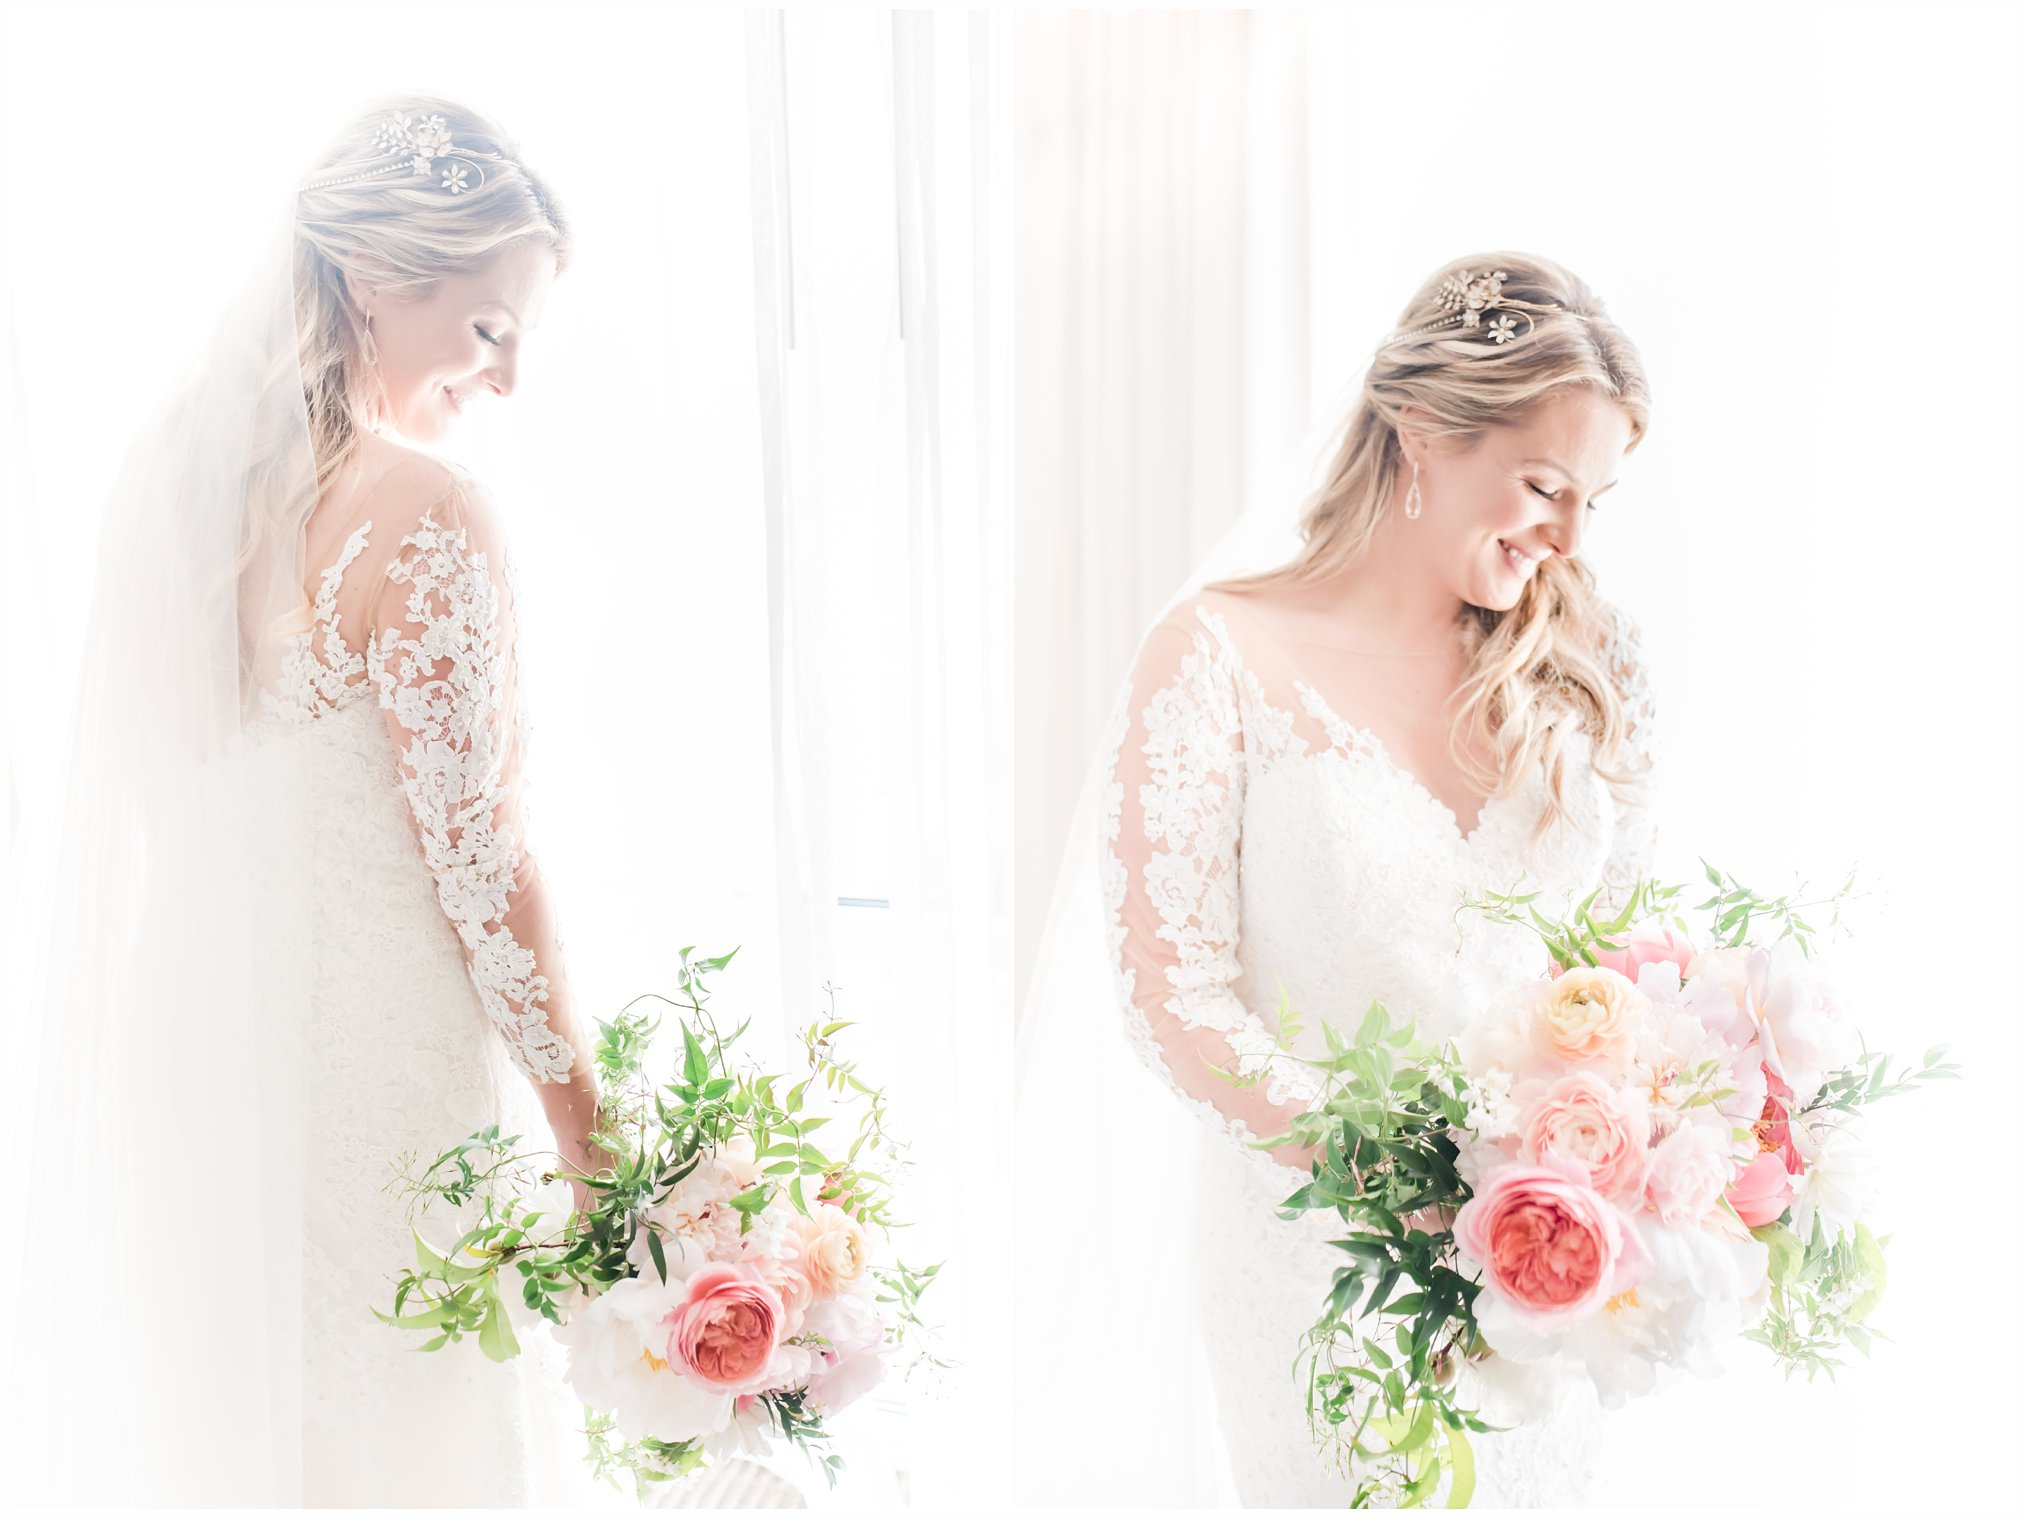 Susie's bridal gown by Pronovias